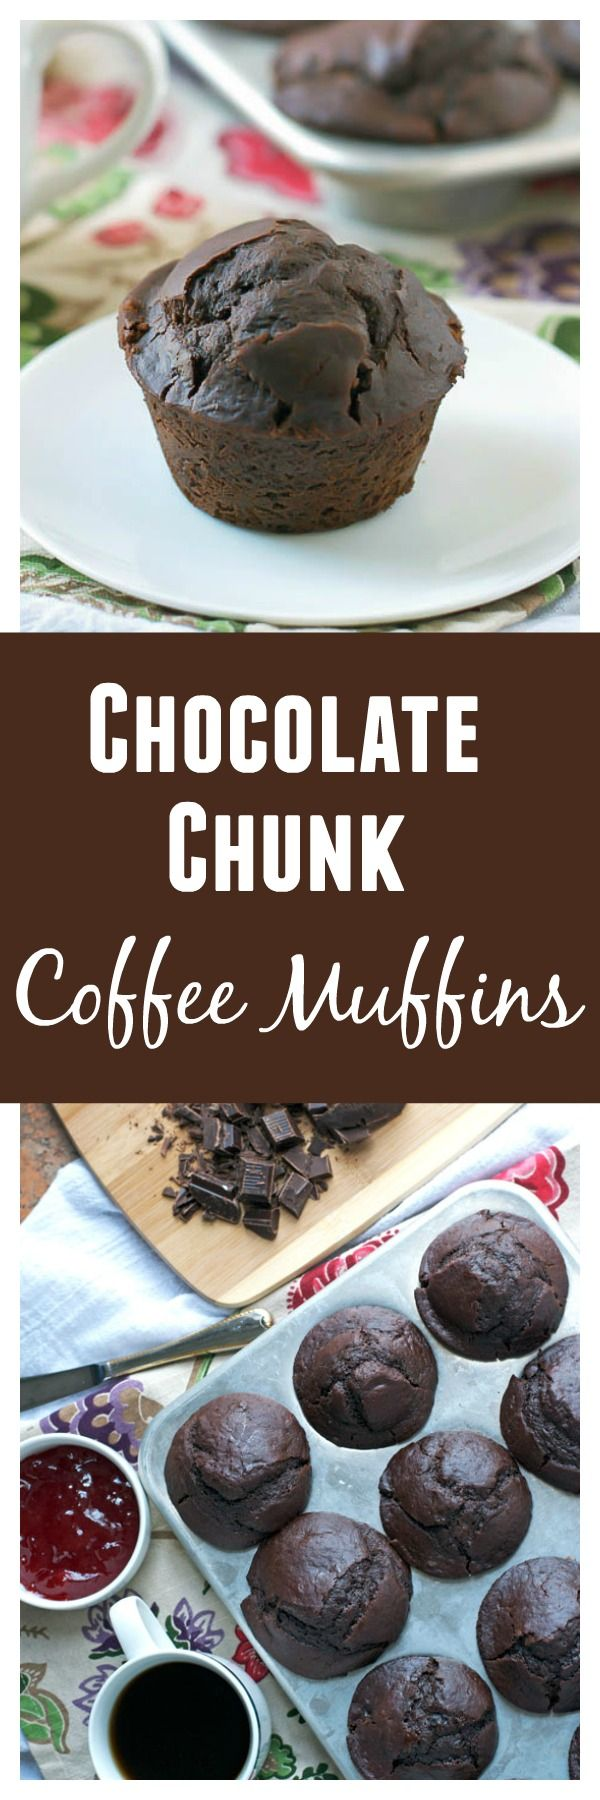 Chocolate Chunk Coffee Muffins. Stuffed with chocolate and laced with espresso, these muffins pack a decadent punch of flavor!